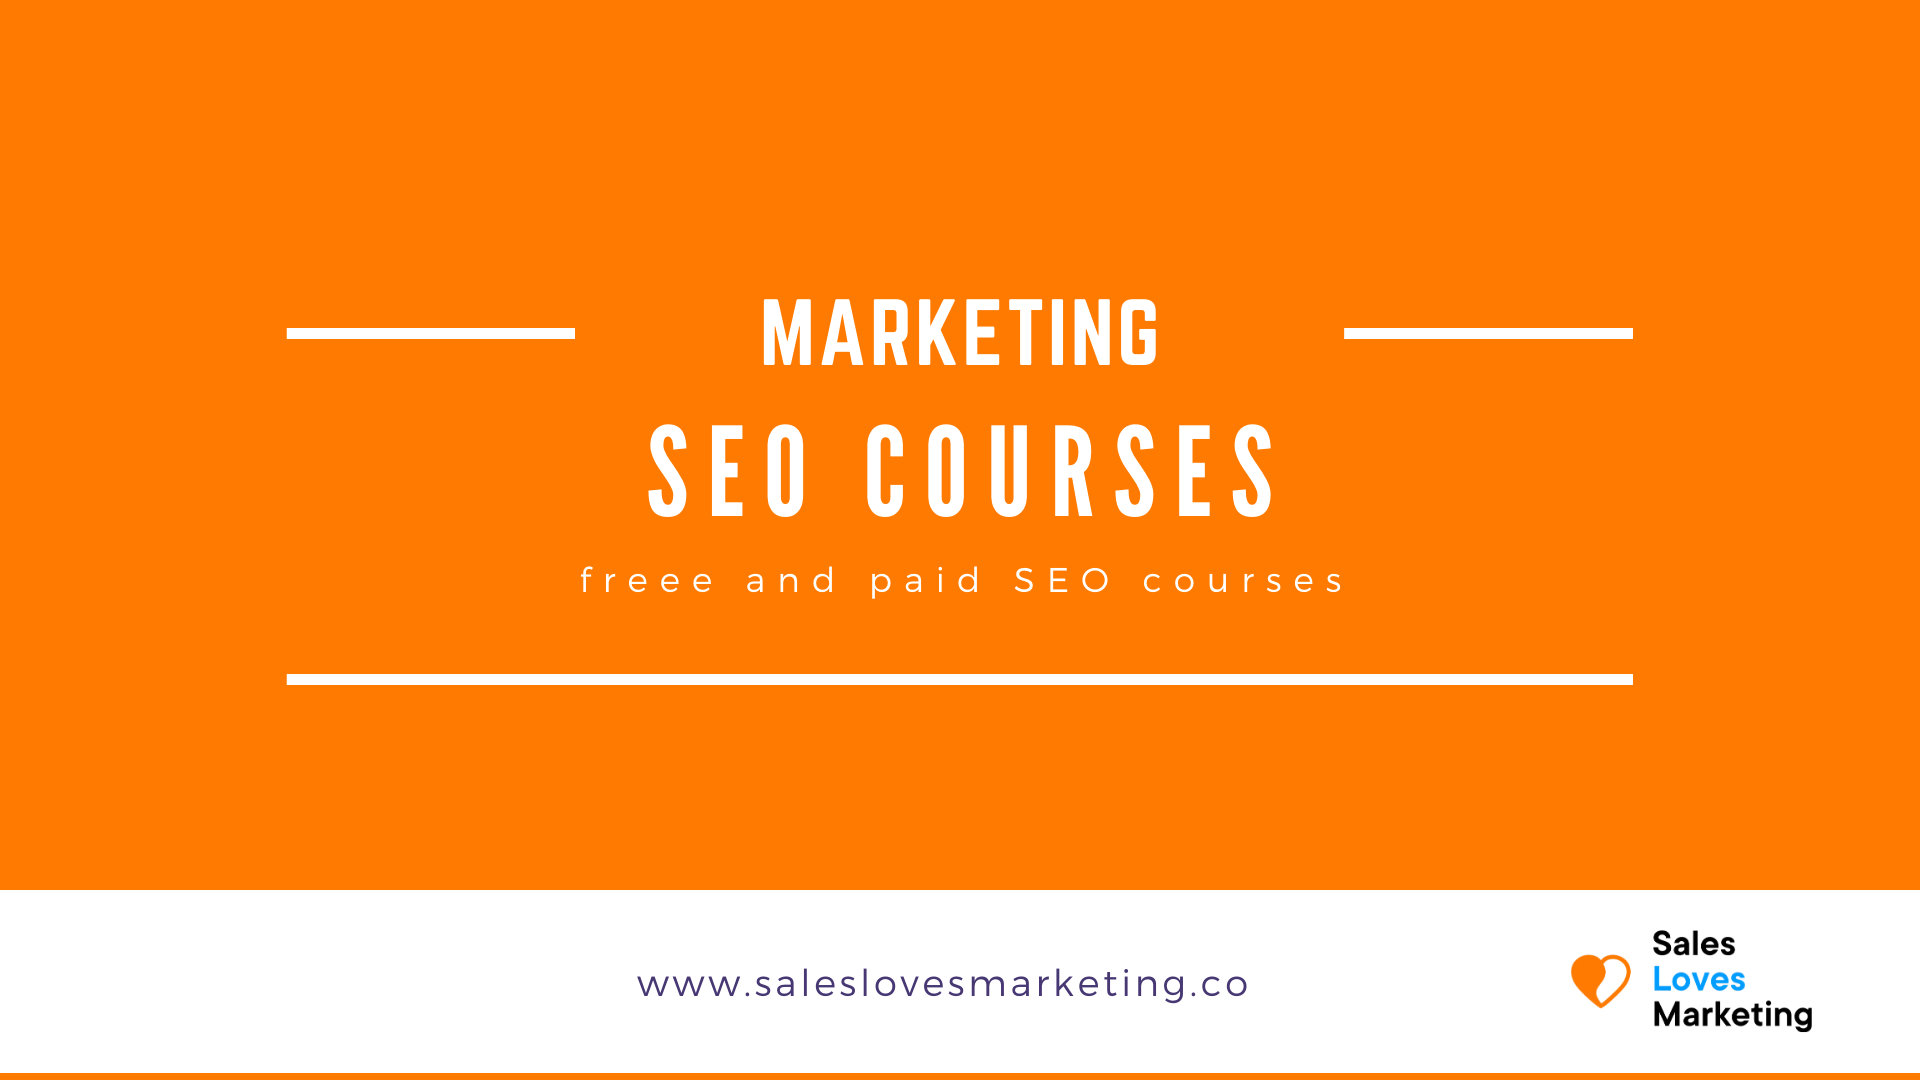 Free SEO courses to learn everything about Search Engine Optimization